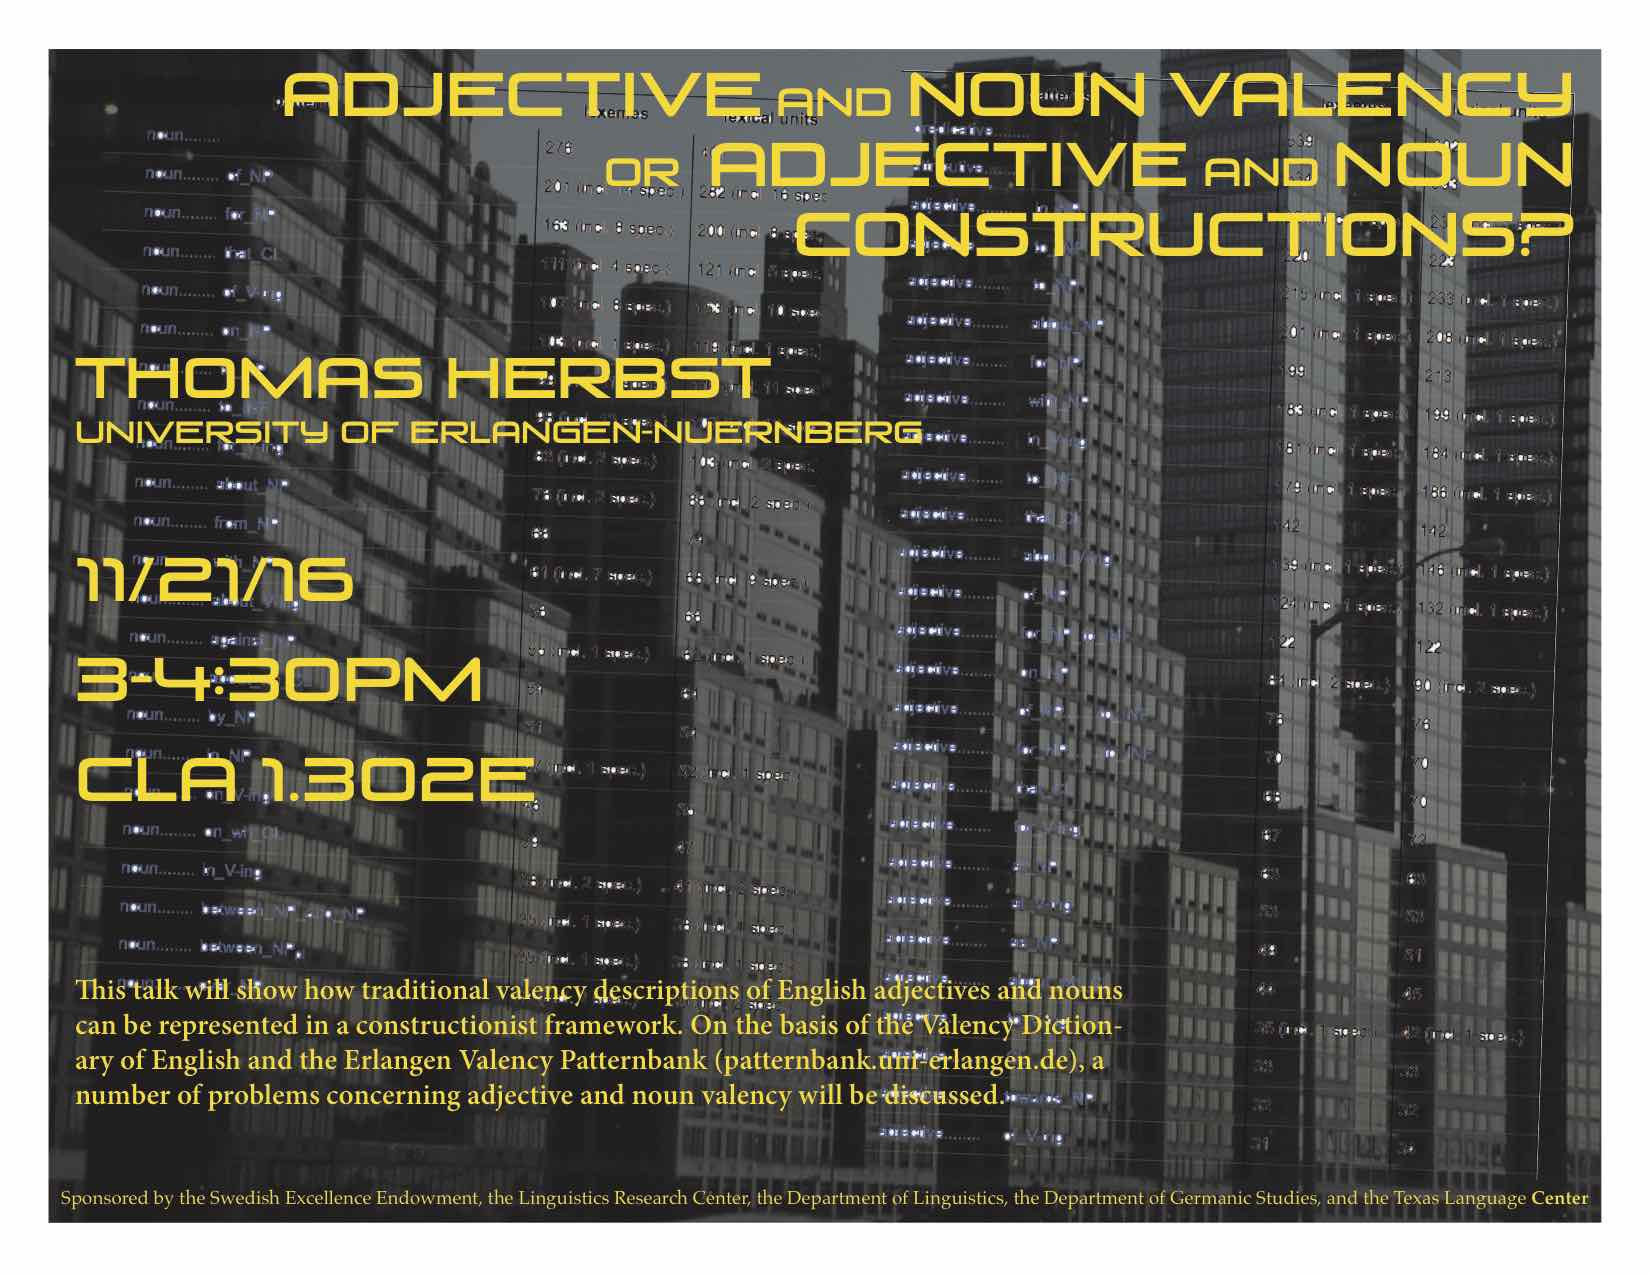 Thomas Herbst will talk on adjective and noun valency from a constructionist framework